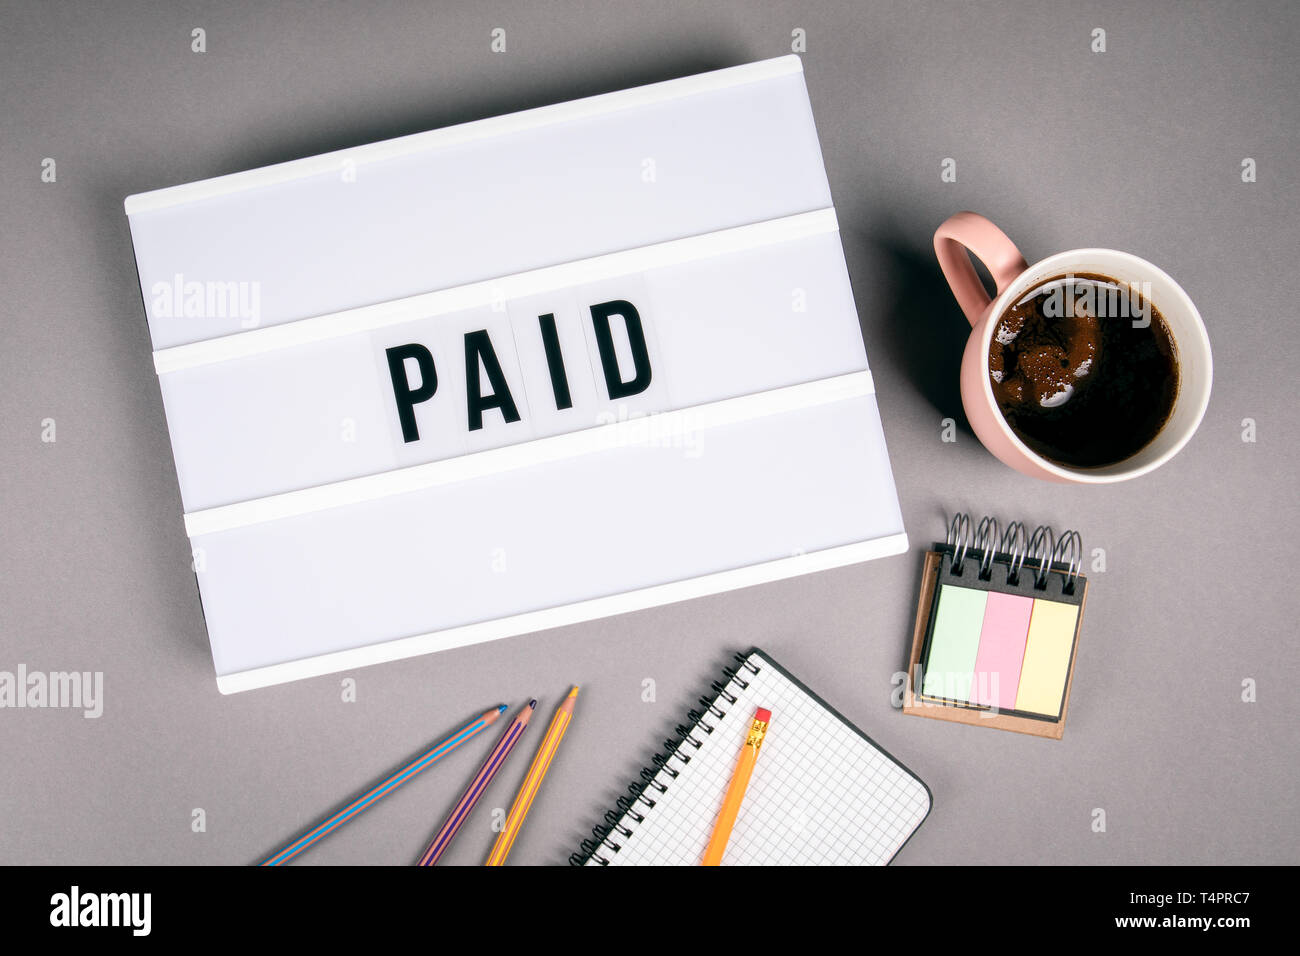 Paid. Text in light box - Stock Image